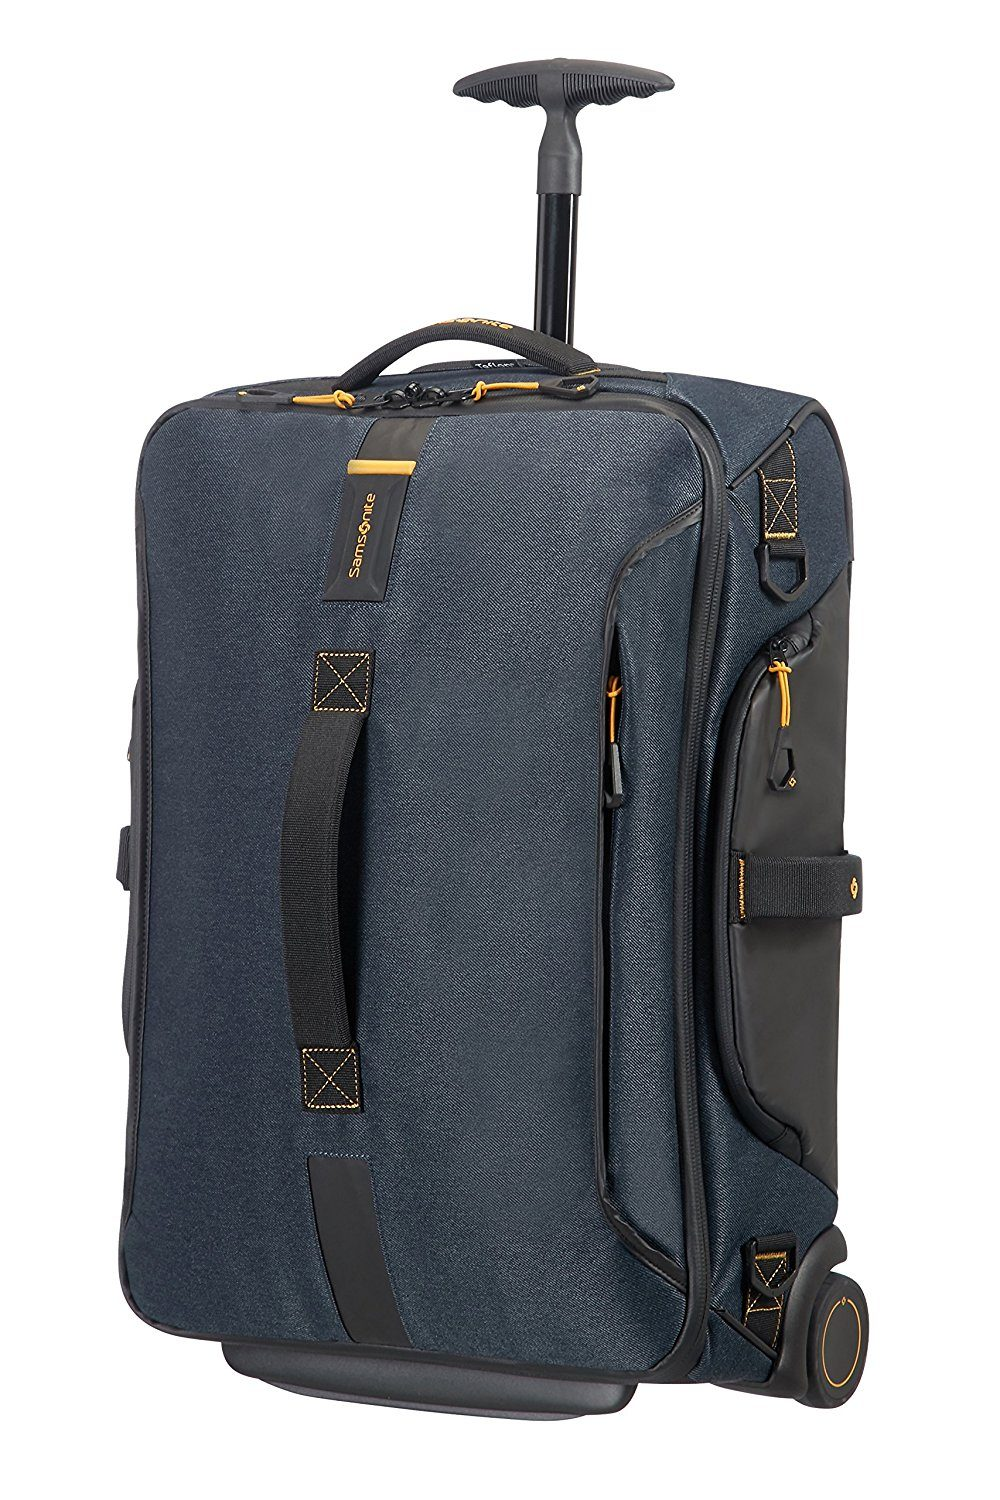 Samsonite Paradiver Light Duffle jeans blue colour